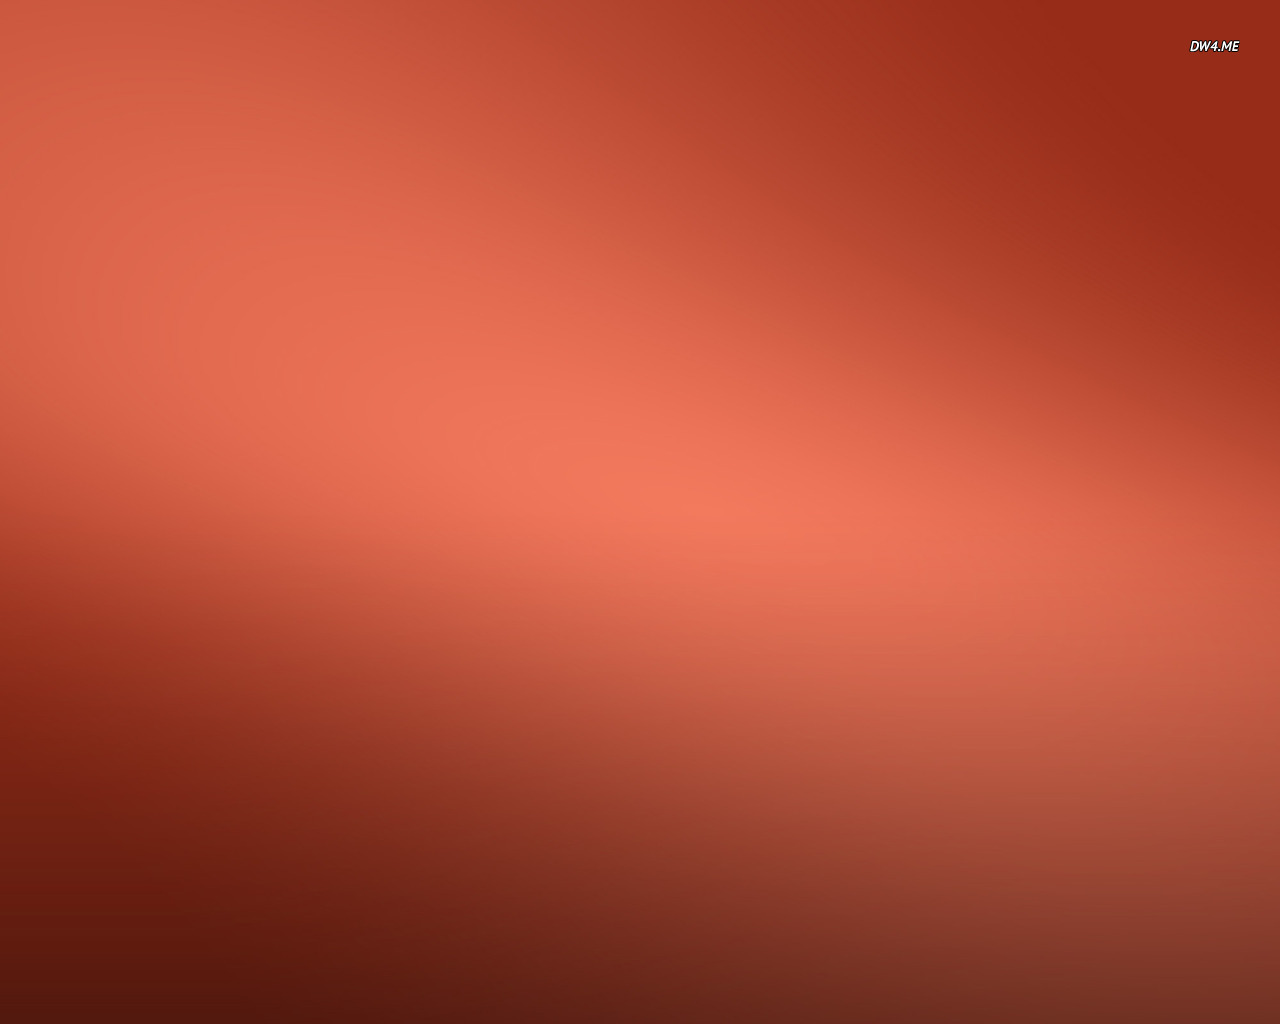 Copper wallpaper   Minimalistic wallpapers   388 1280x1024